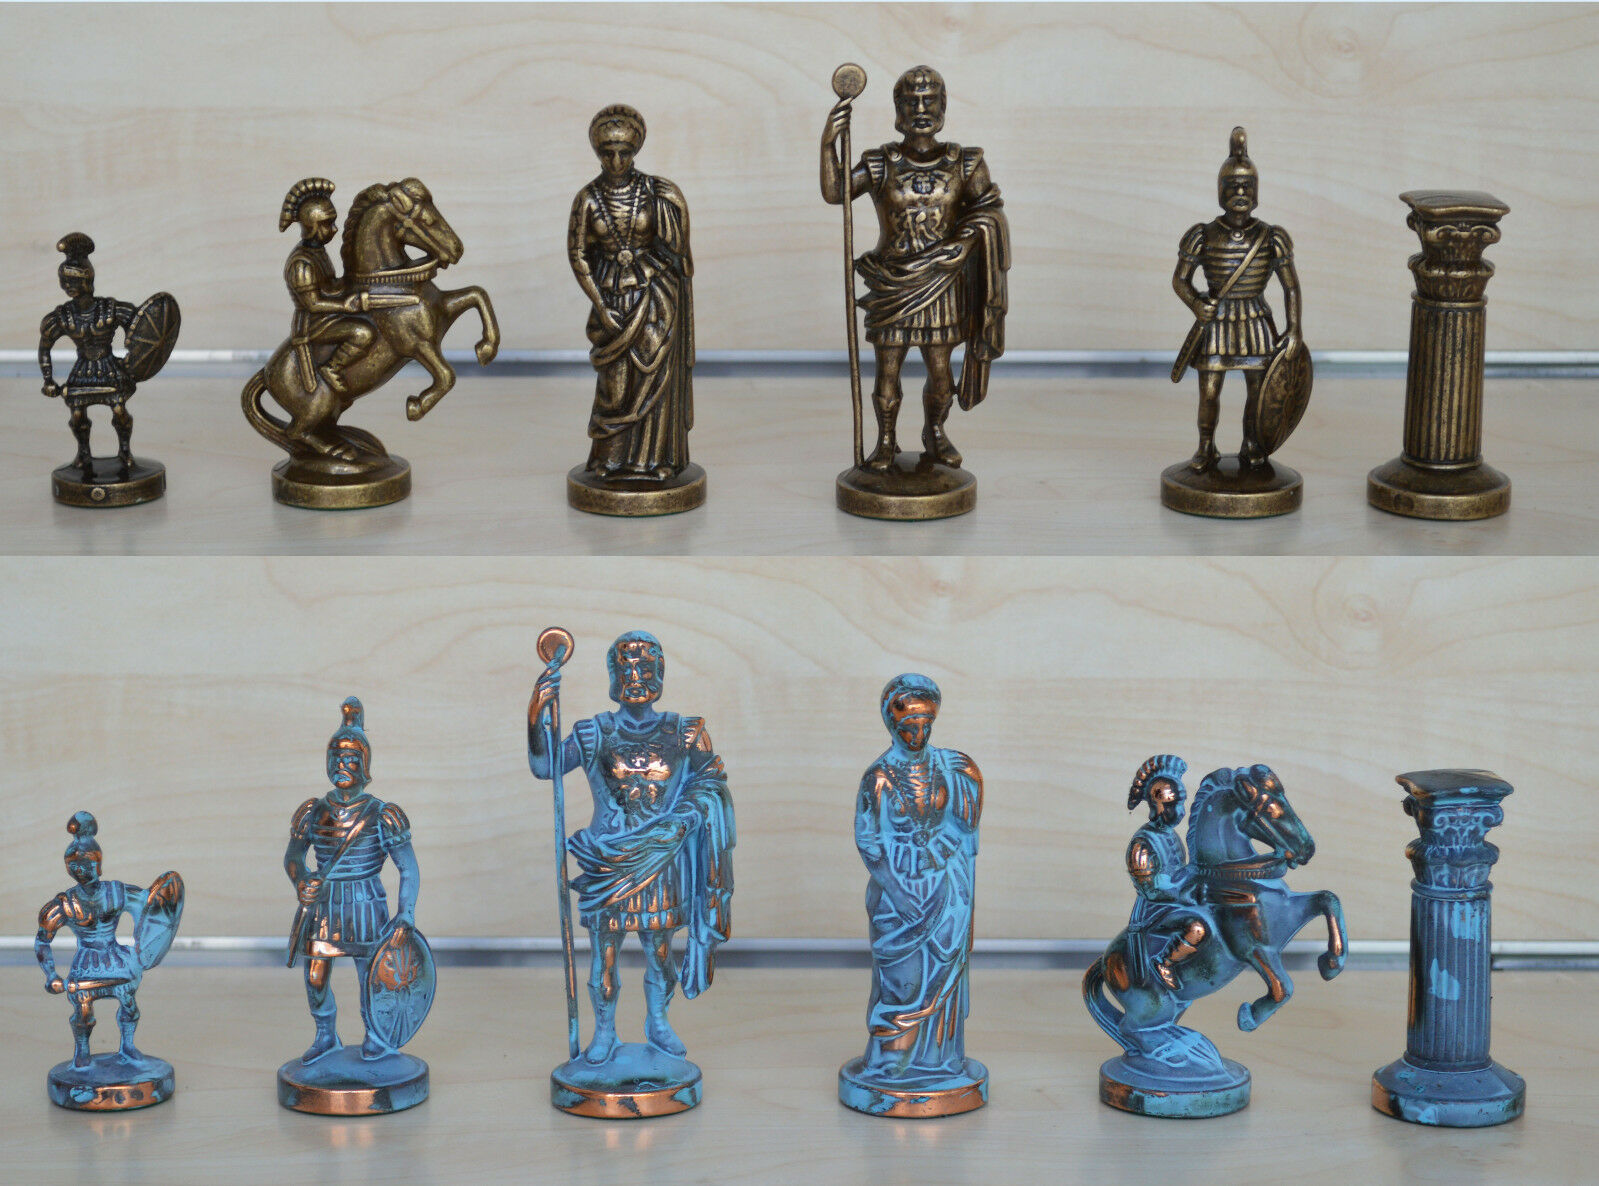 Manopoulos Romans Chess Set - bluee-Copper - Handmade in Greece